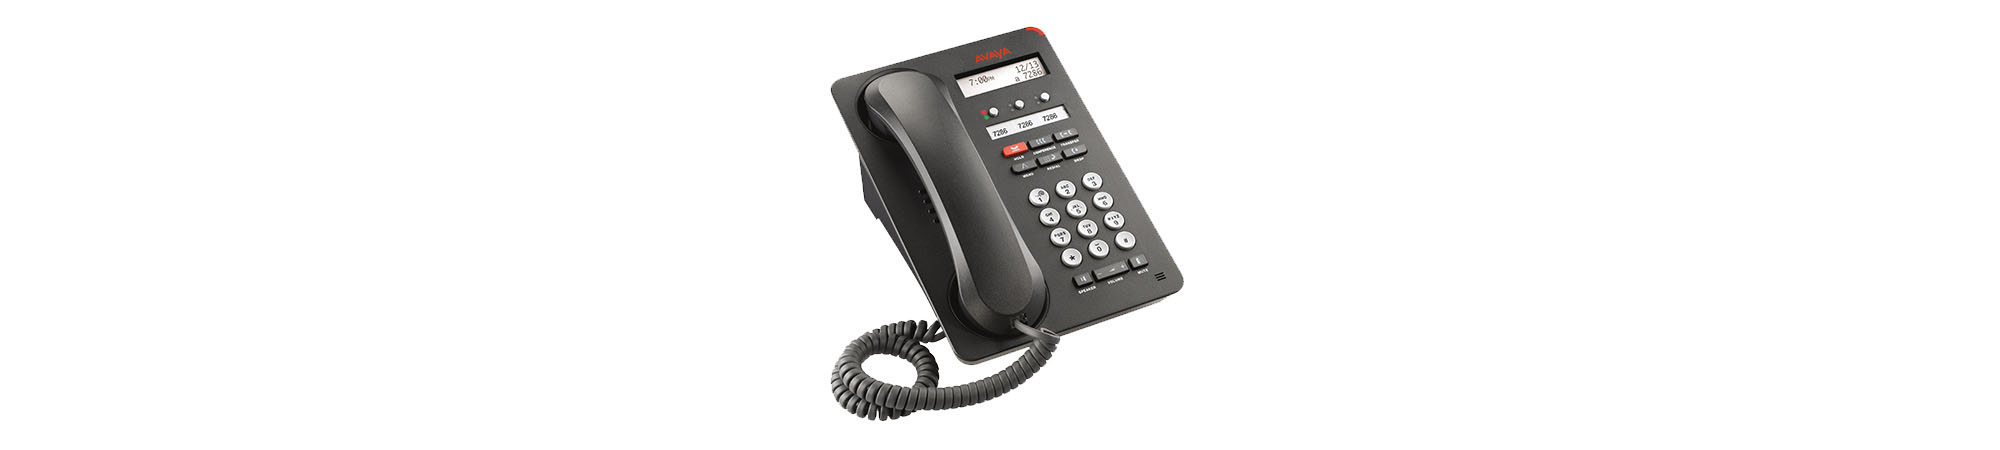 Avaya 1603 user guide